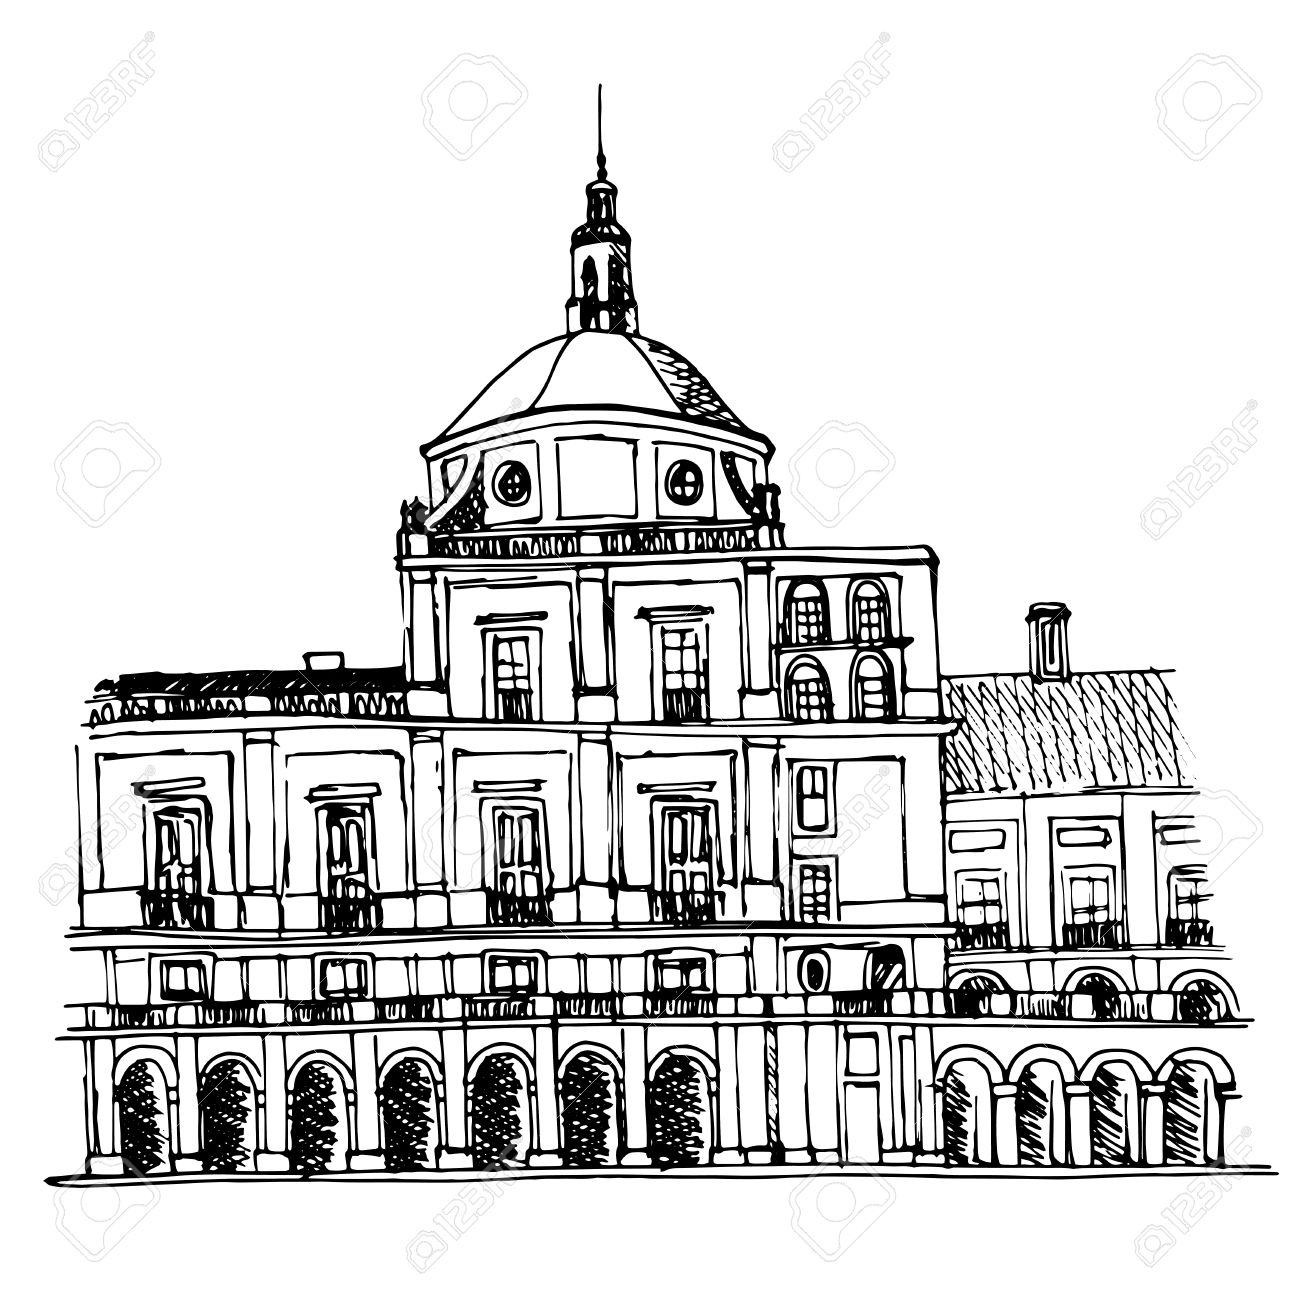 Urban Sketch Of The Royal Palace In Aranjuez Royalty Free Cliparts.